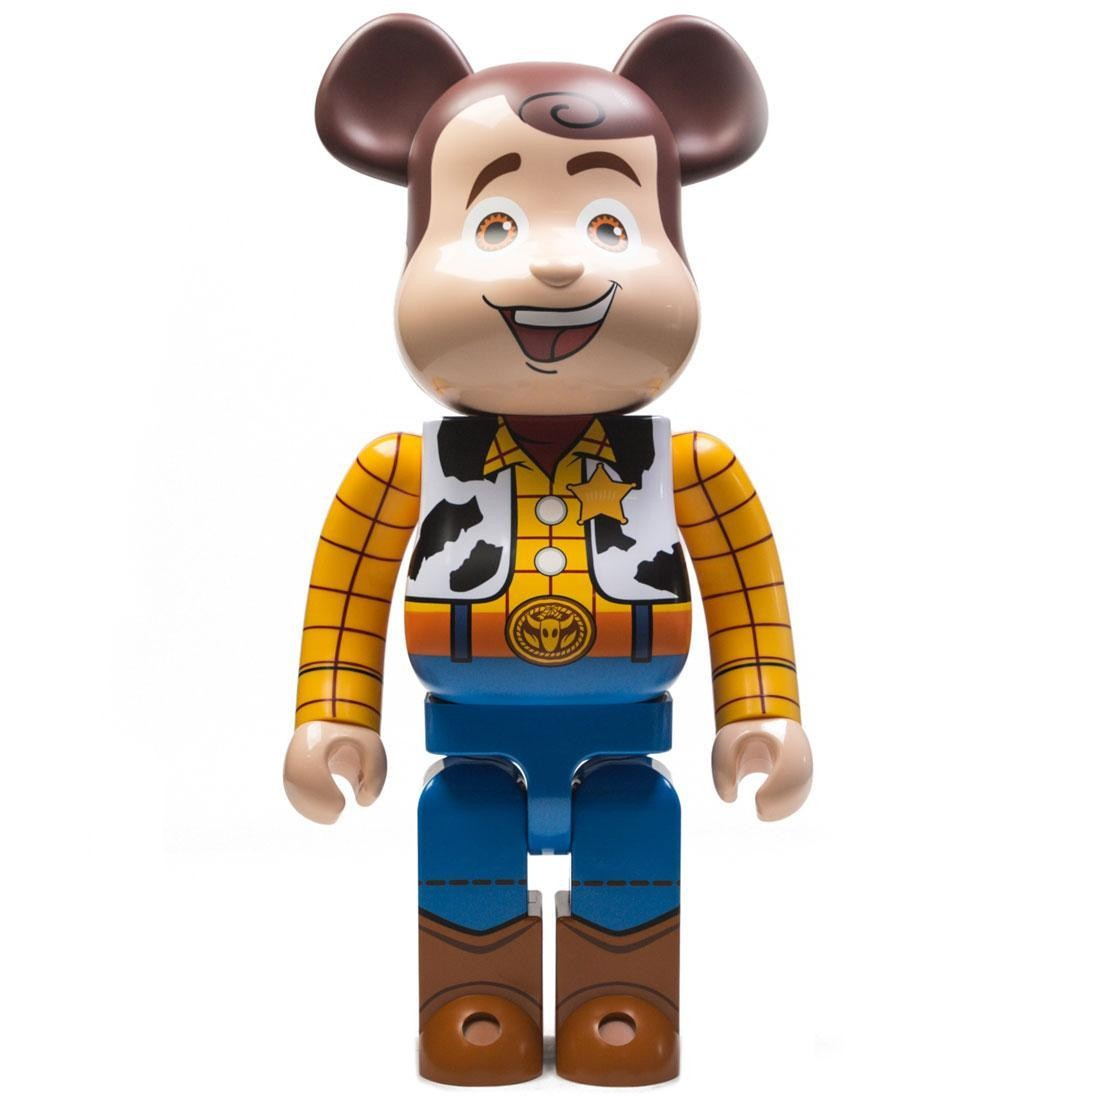 Medicom Toy Story Woody 1000% Bearbrick Figure (brown)